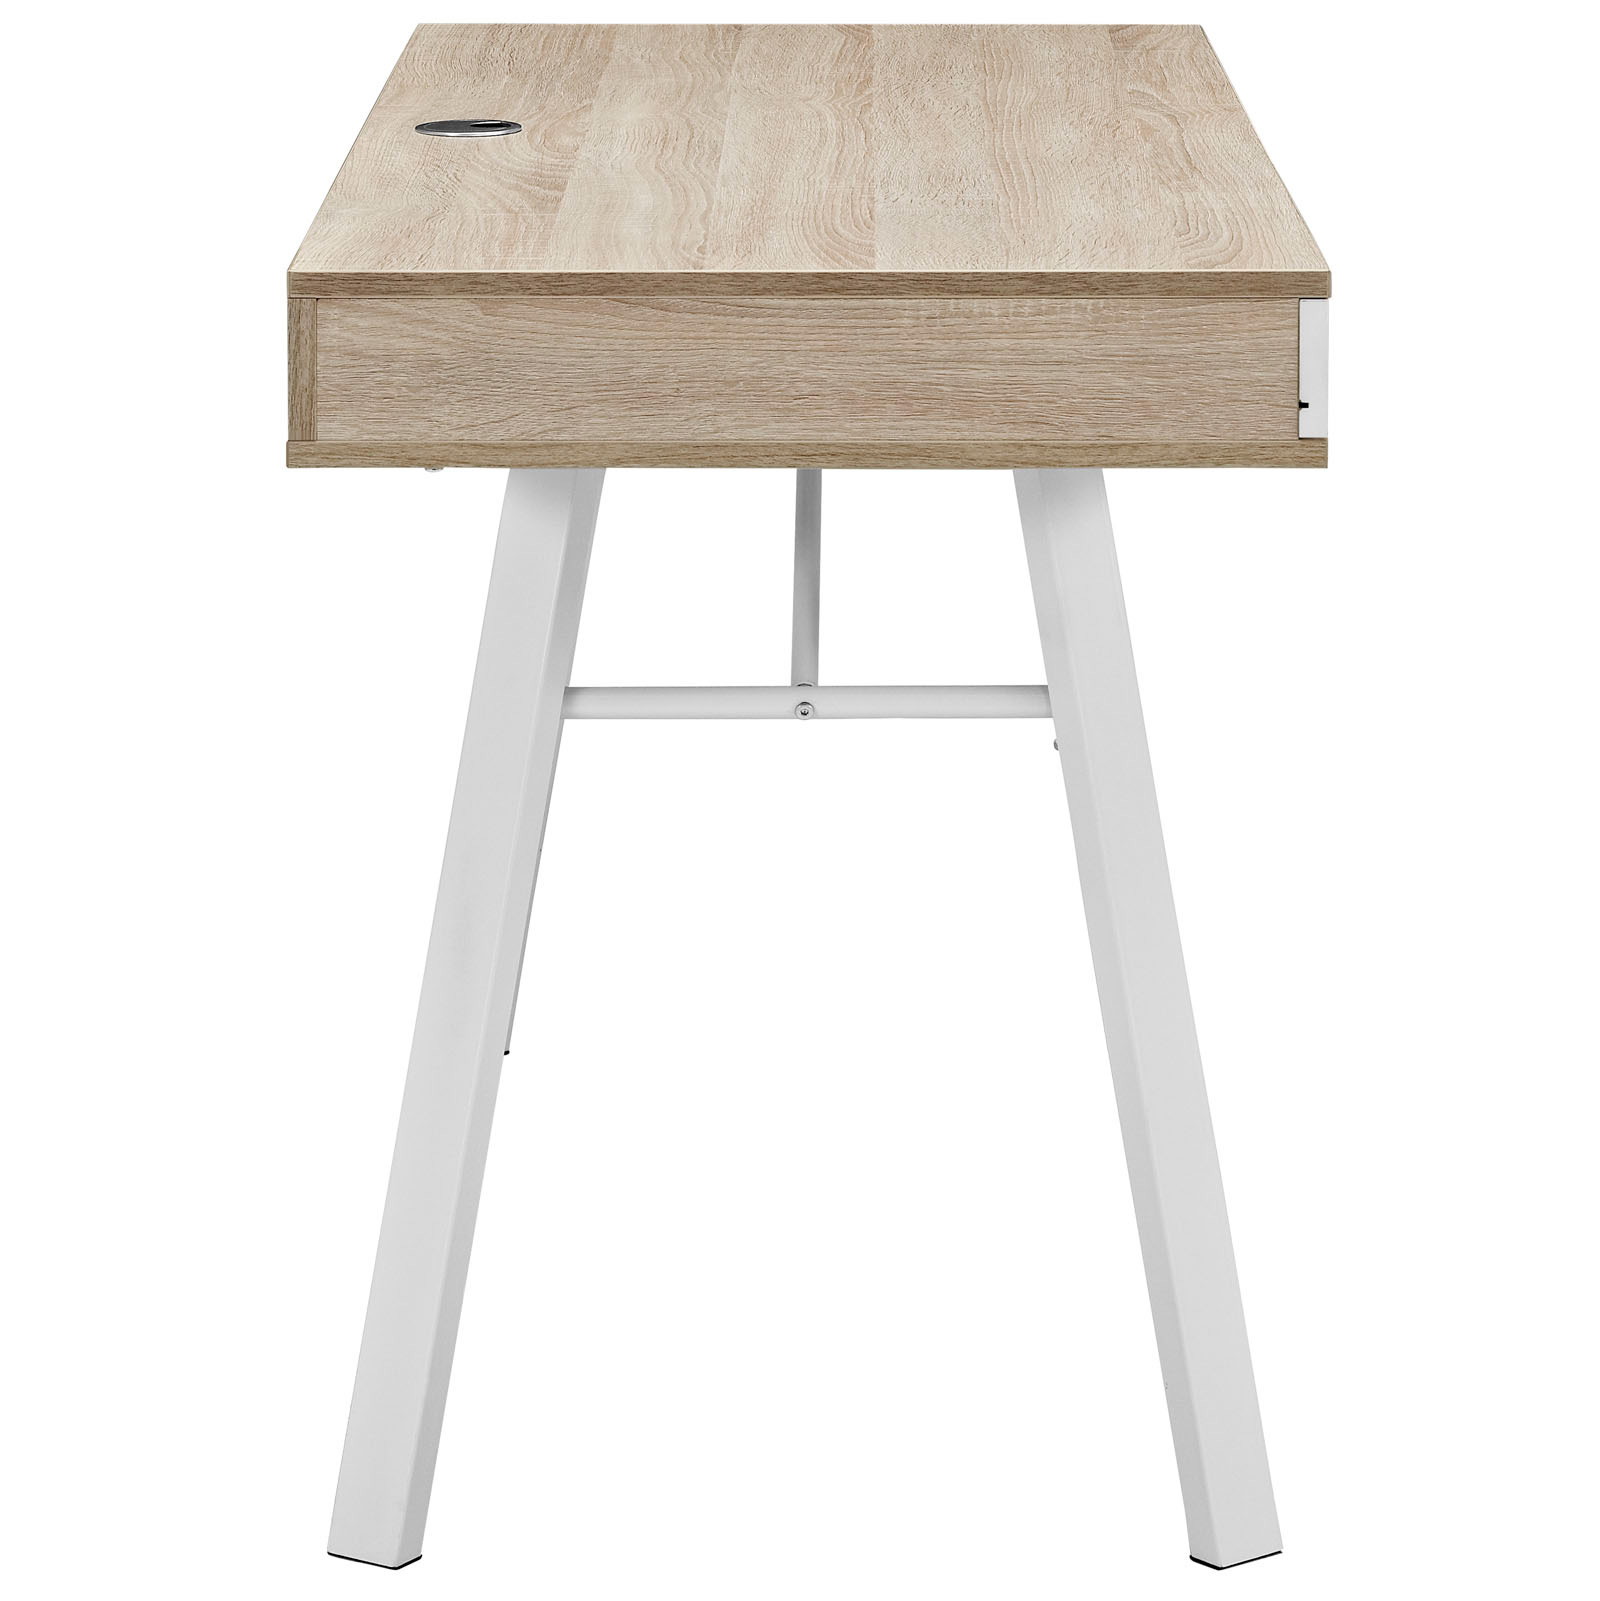 Space Saving Desk From Modway   Side View   Shown In Oak (Beige)